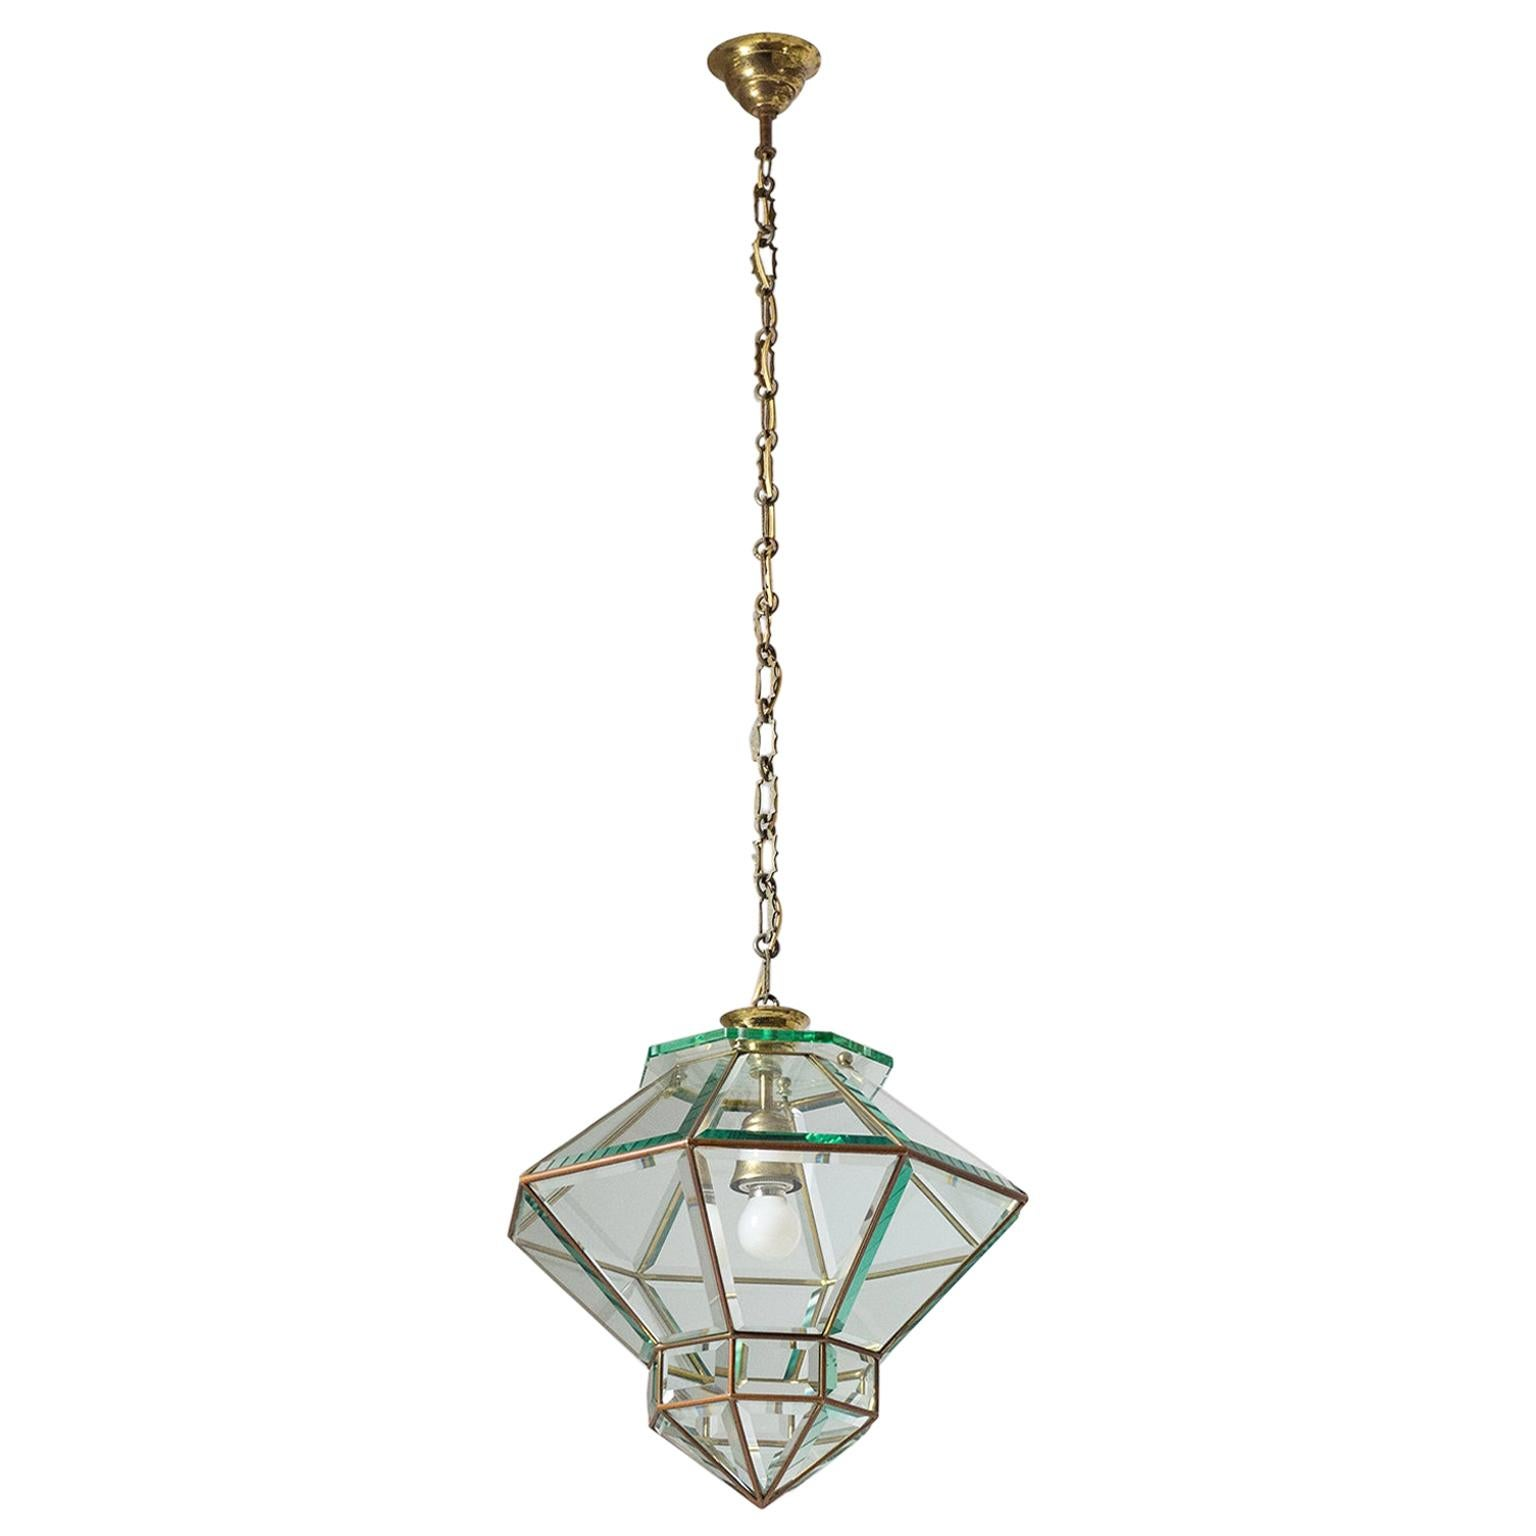 Italian 1940s Lantern, Faceted Glass and Brass